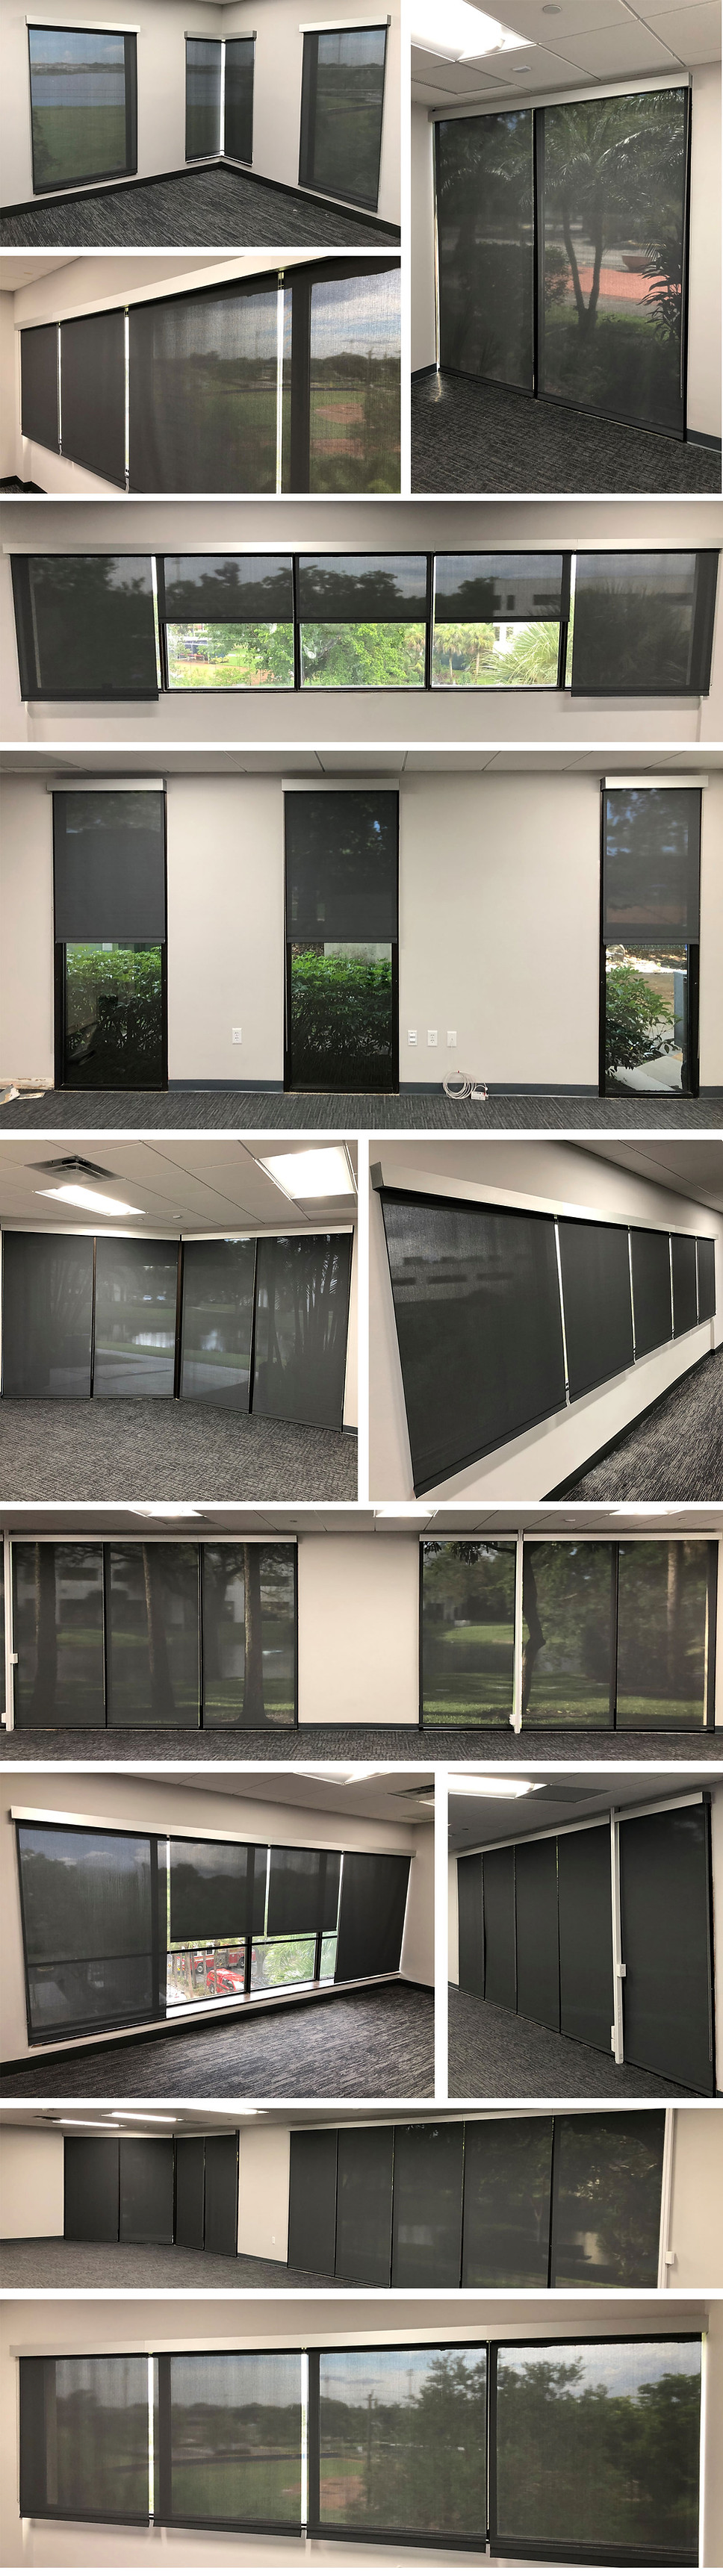 headway-office-park-window-shades-projec